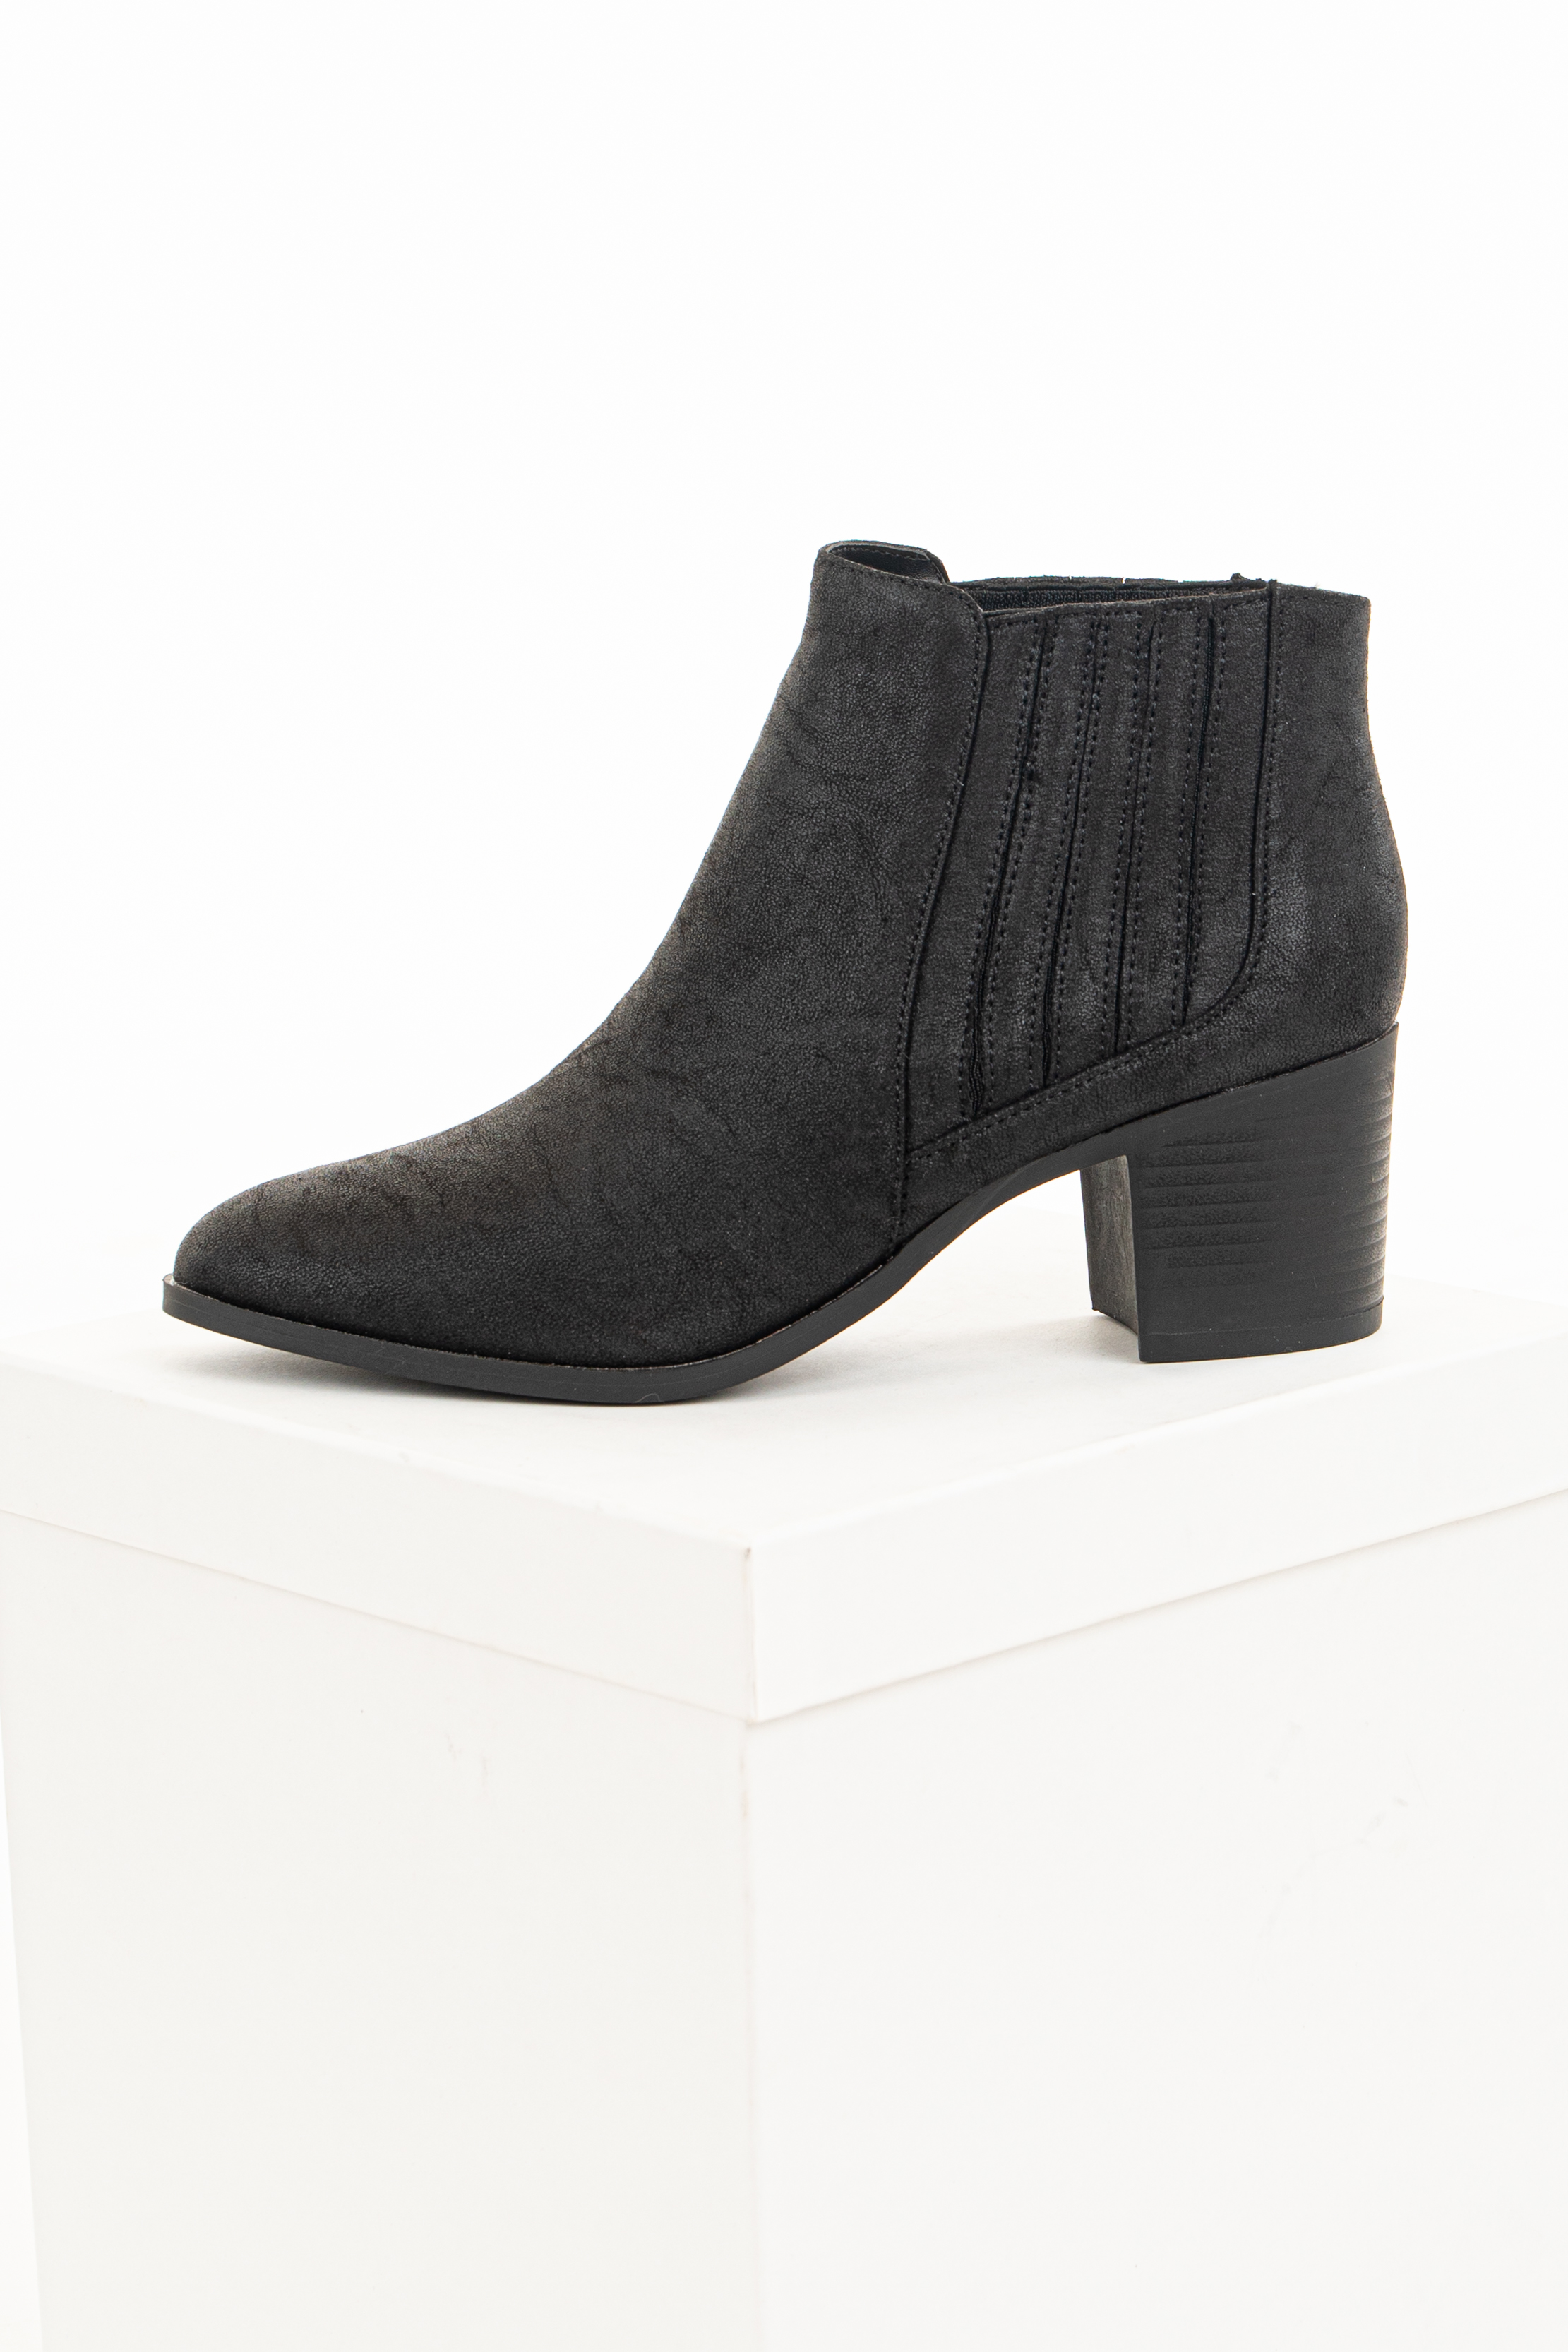 Black Faux Leather Bootie with Stacked Heel